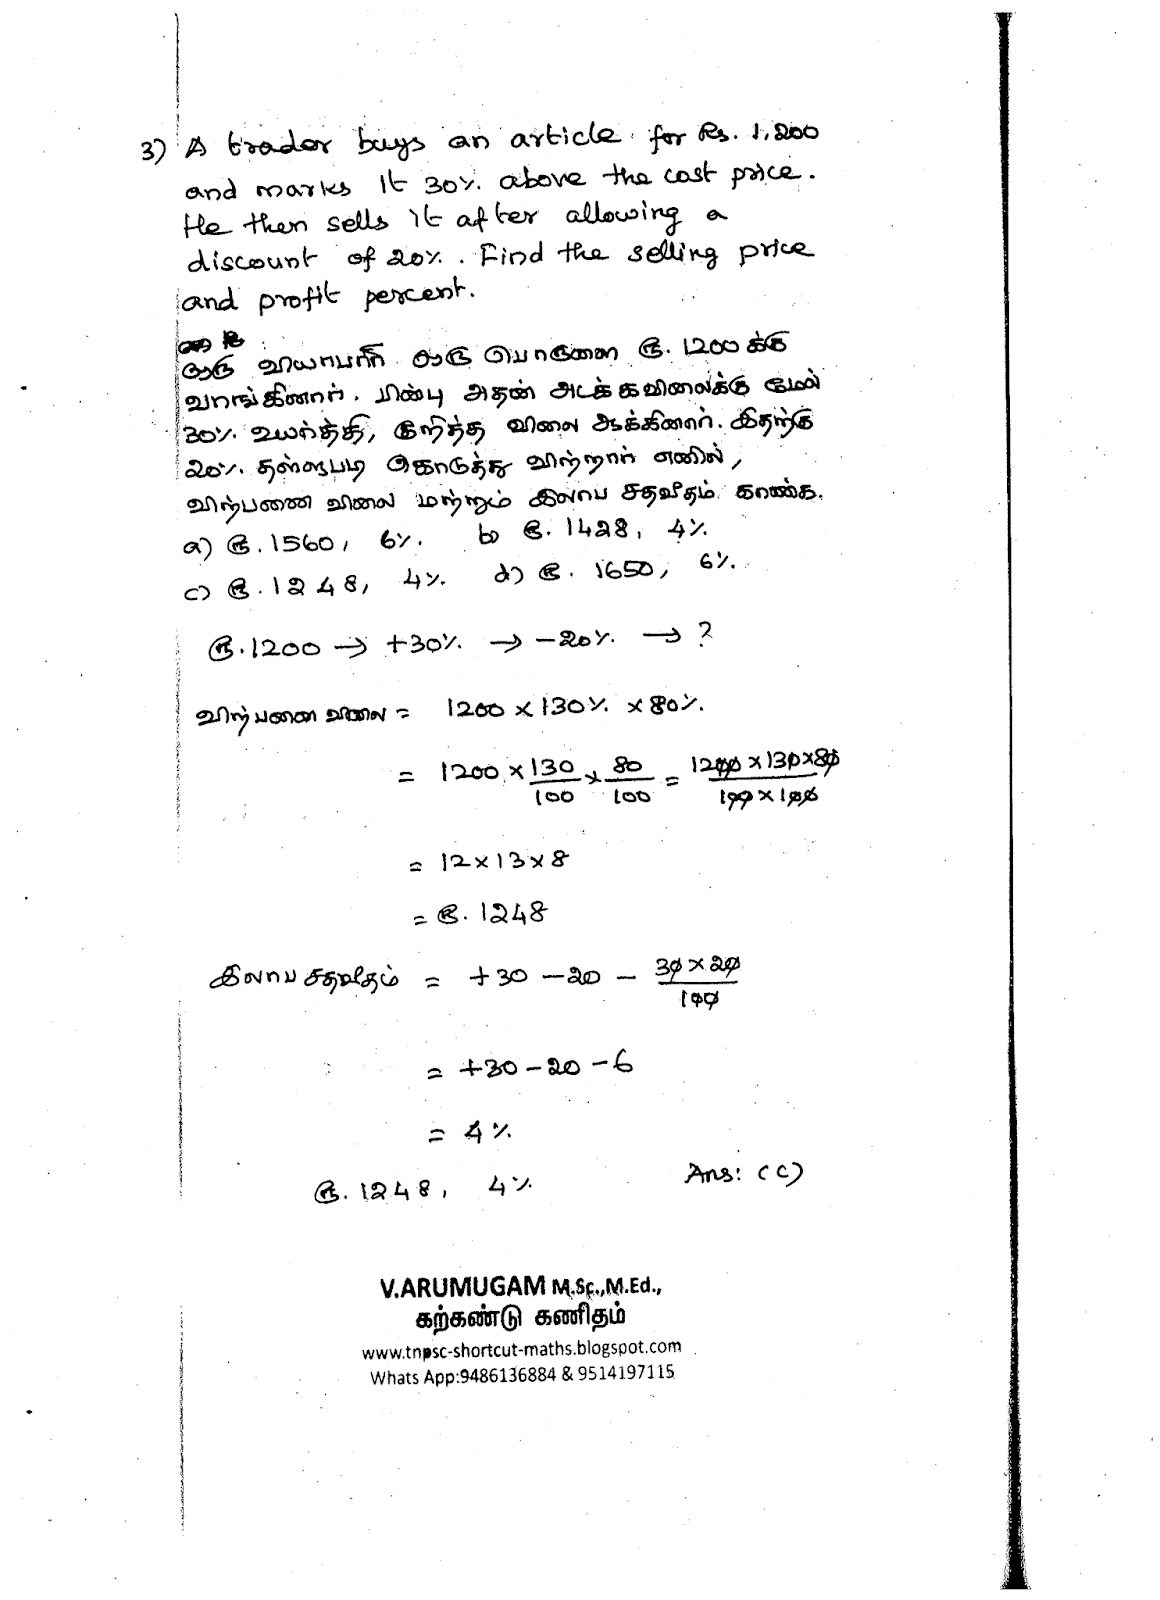 TNPSC – 2019 - Project Officer in Tamil Nadu General Service and Psychologist in Tamil Nadu Jail Service EXAM - EXAM DATE: 21.12.2019. PAGE - 02/15